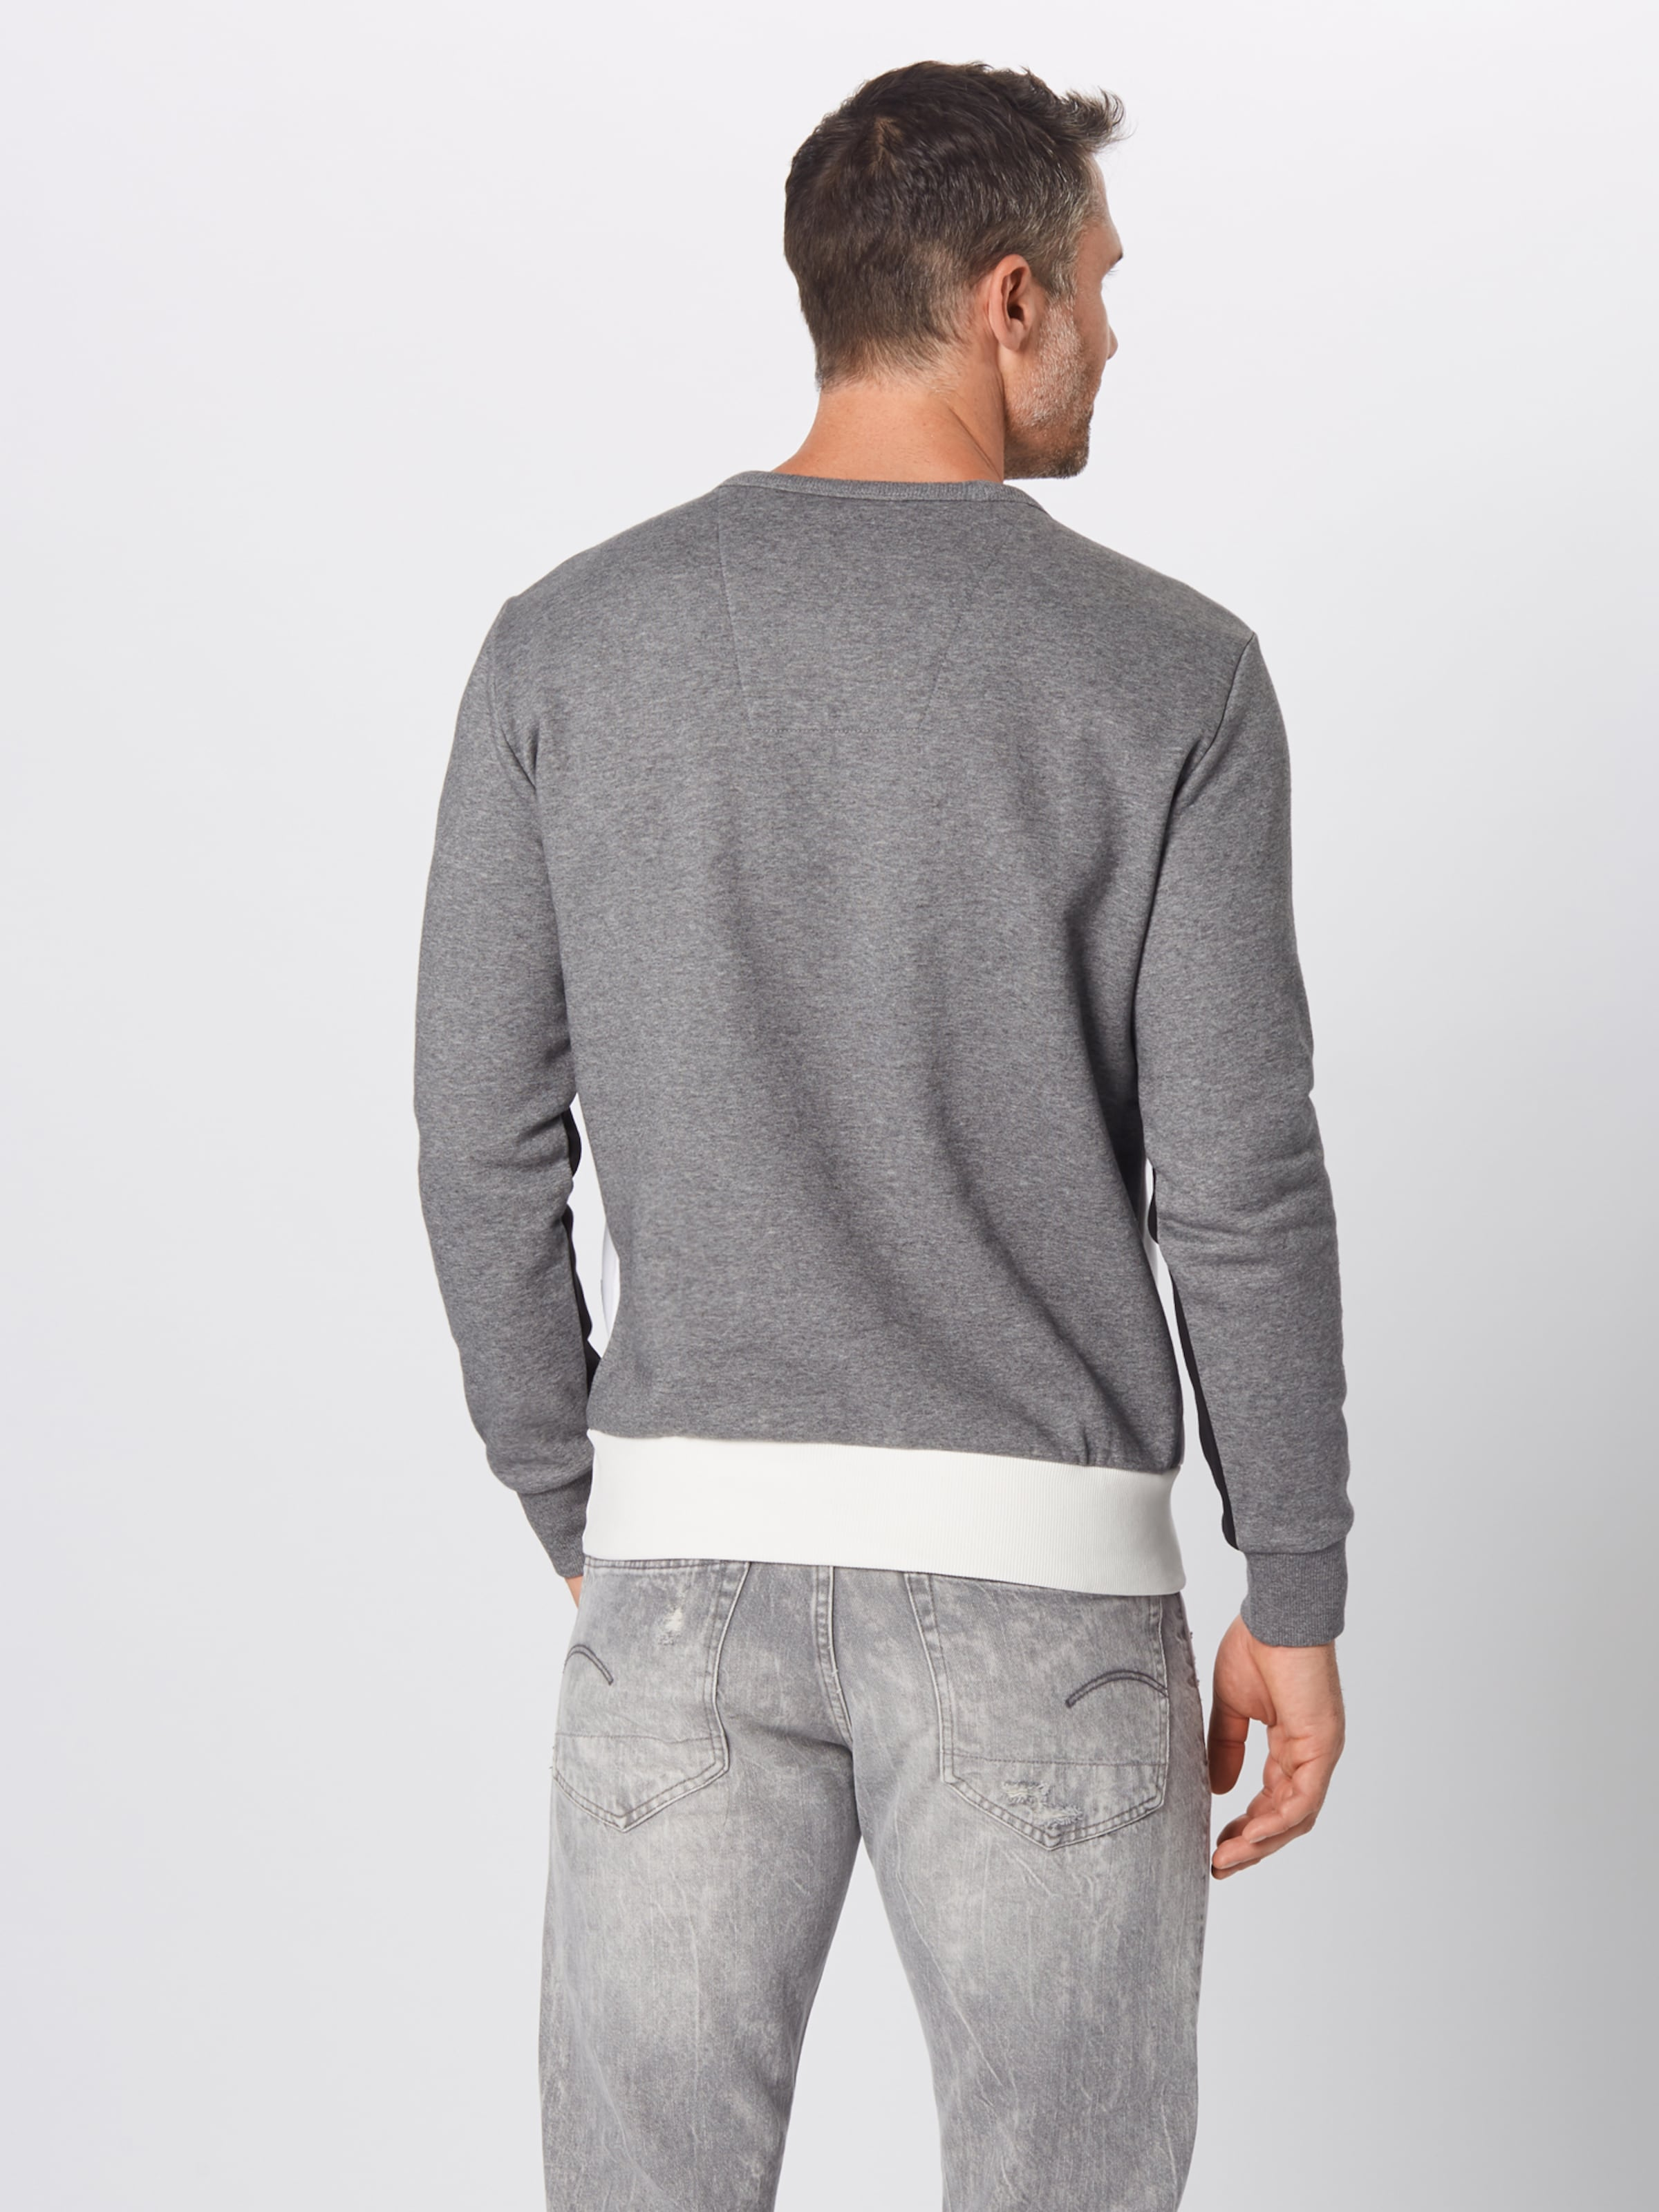 G Gris star shirt New 'swando ChinéNoir Raw Sweat En Blanc Block' qSzVpUM